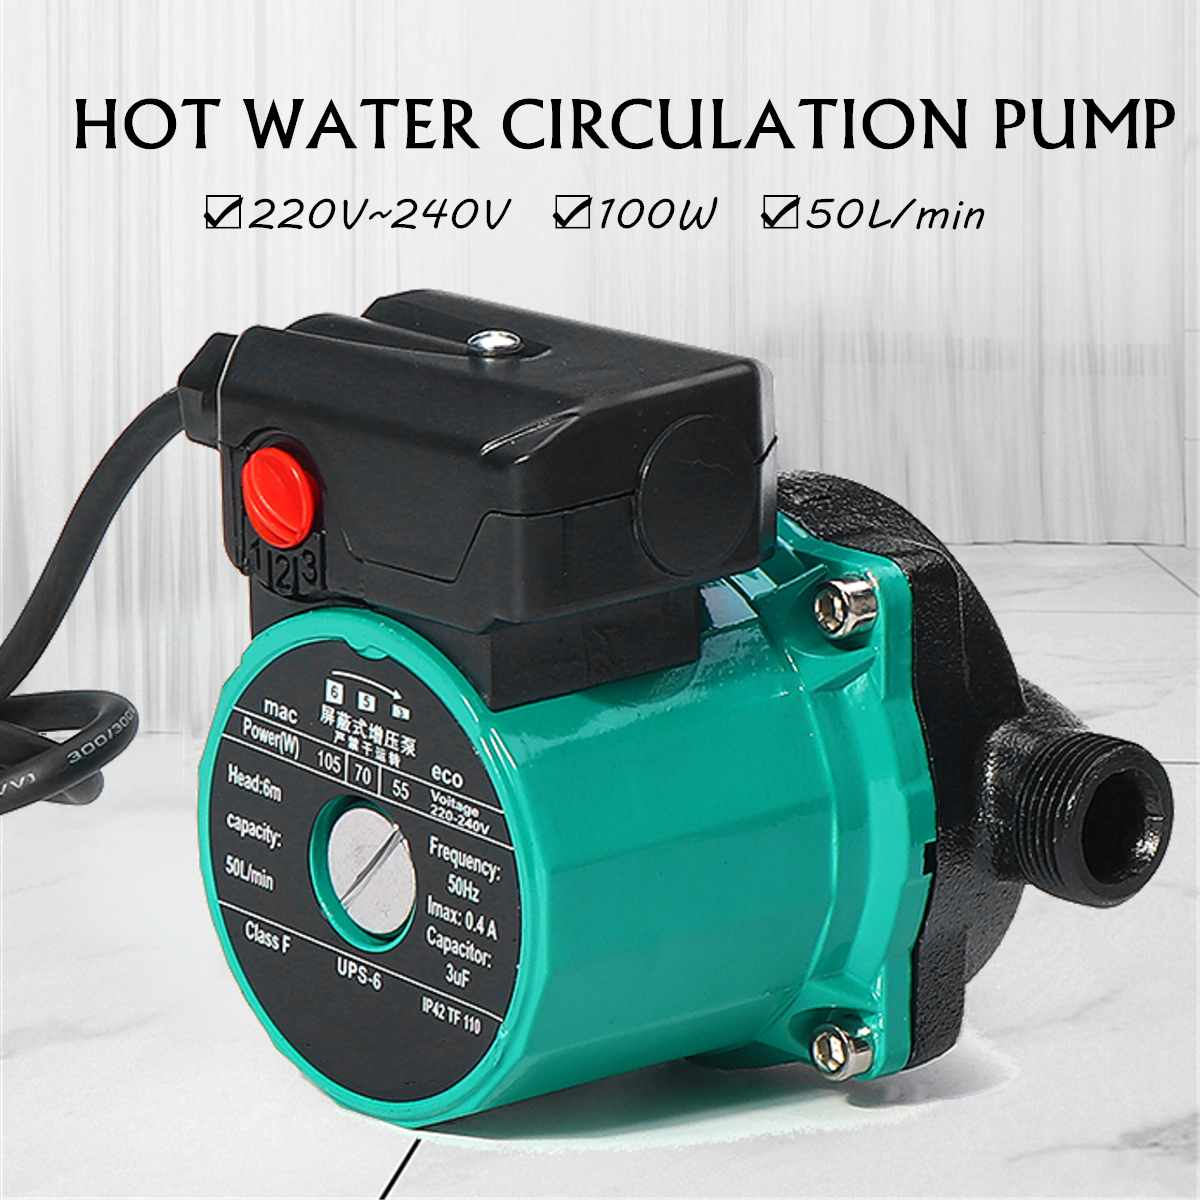 100w 3-speed Booster-Pump Circulation Silent Hot Water Circulation Pump For Household Solar Heater System